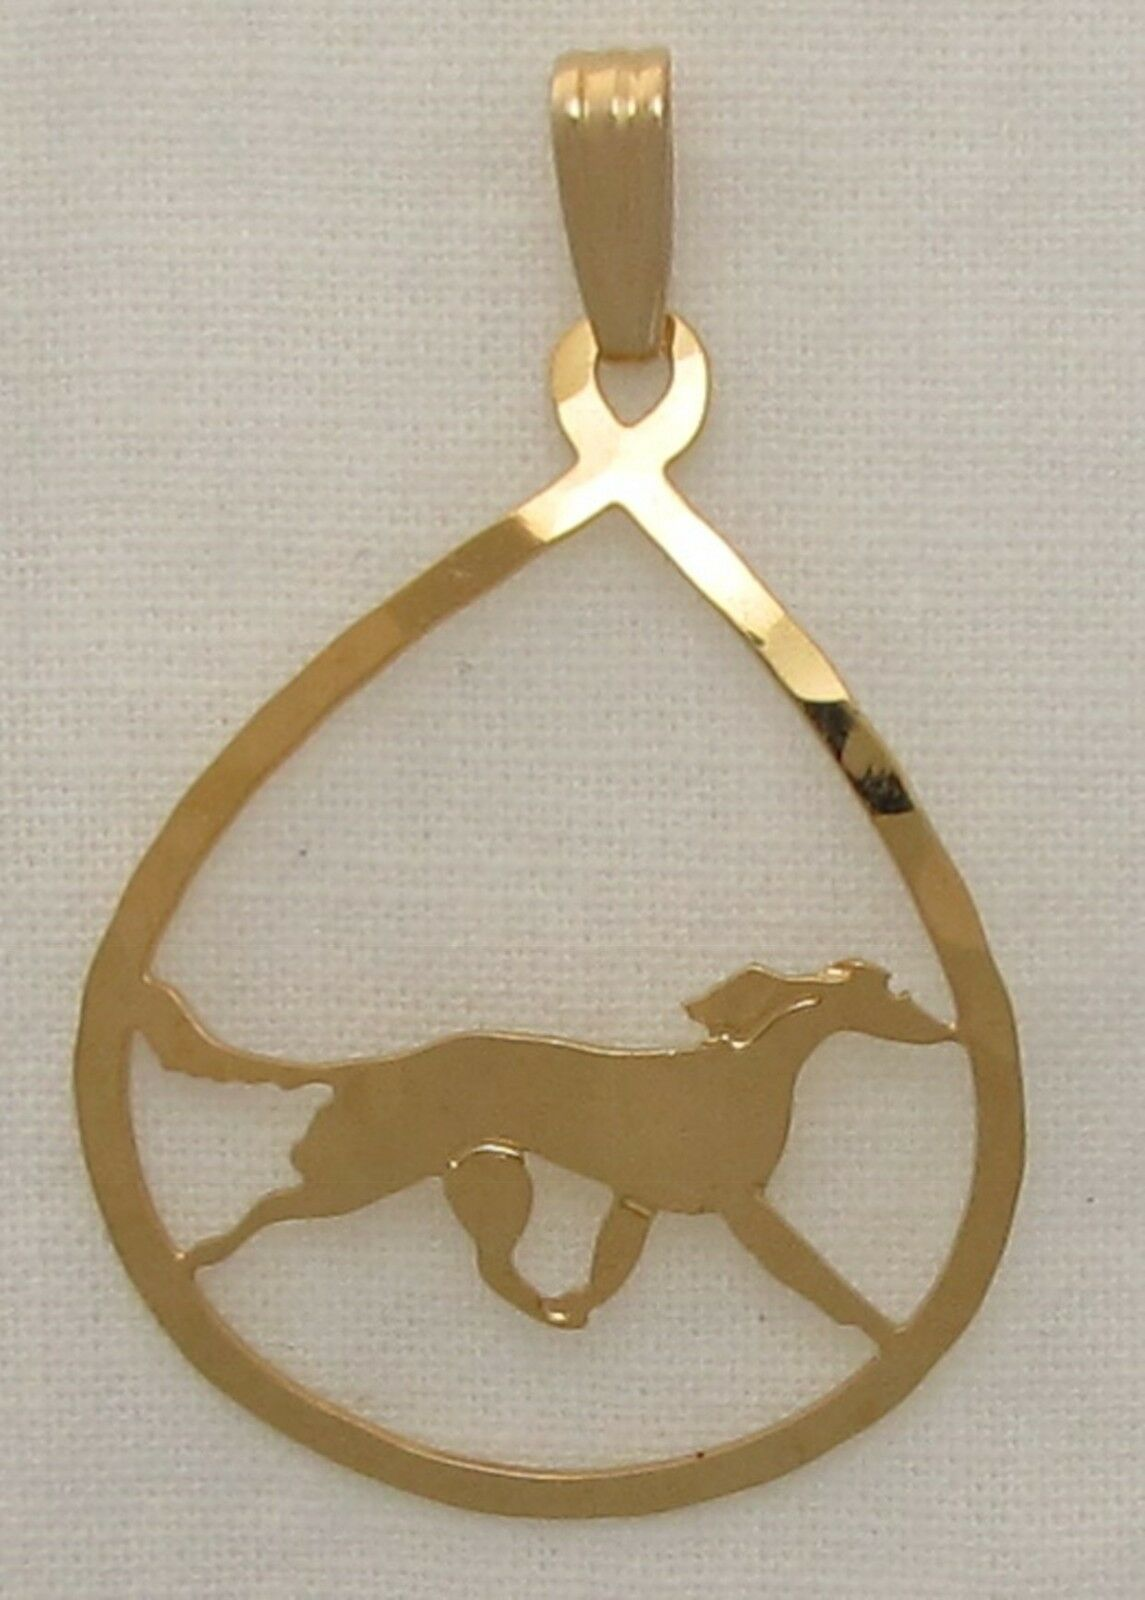 Saluki Jewelry Gold Pendant for Necklace by Touchstone